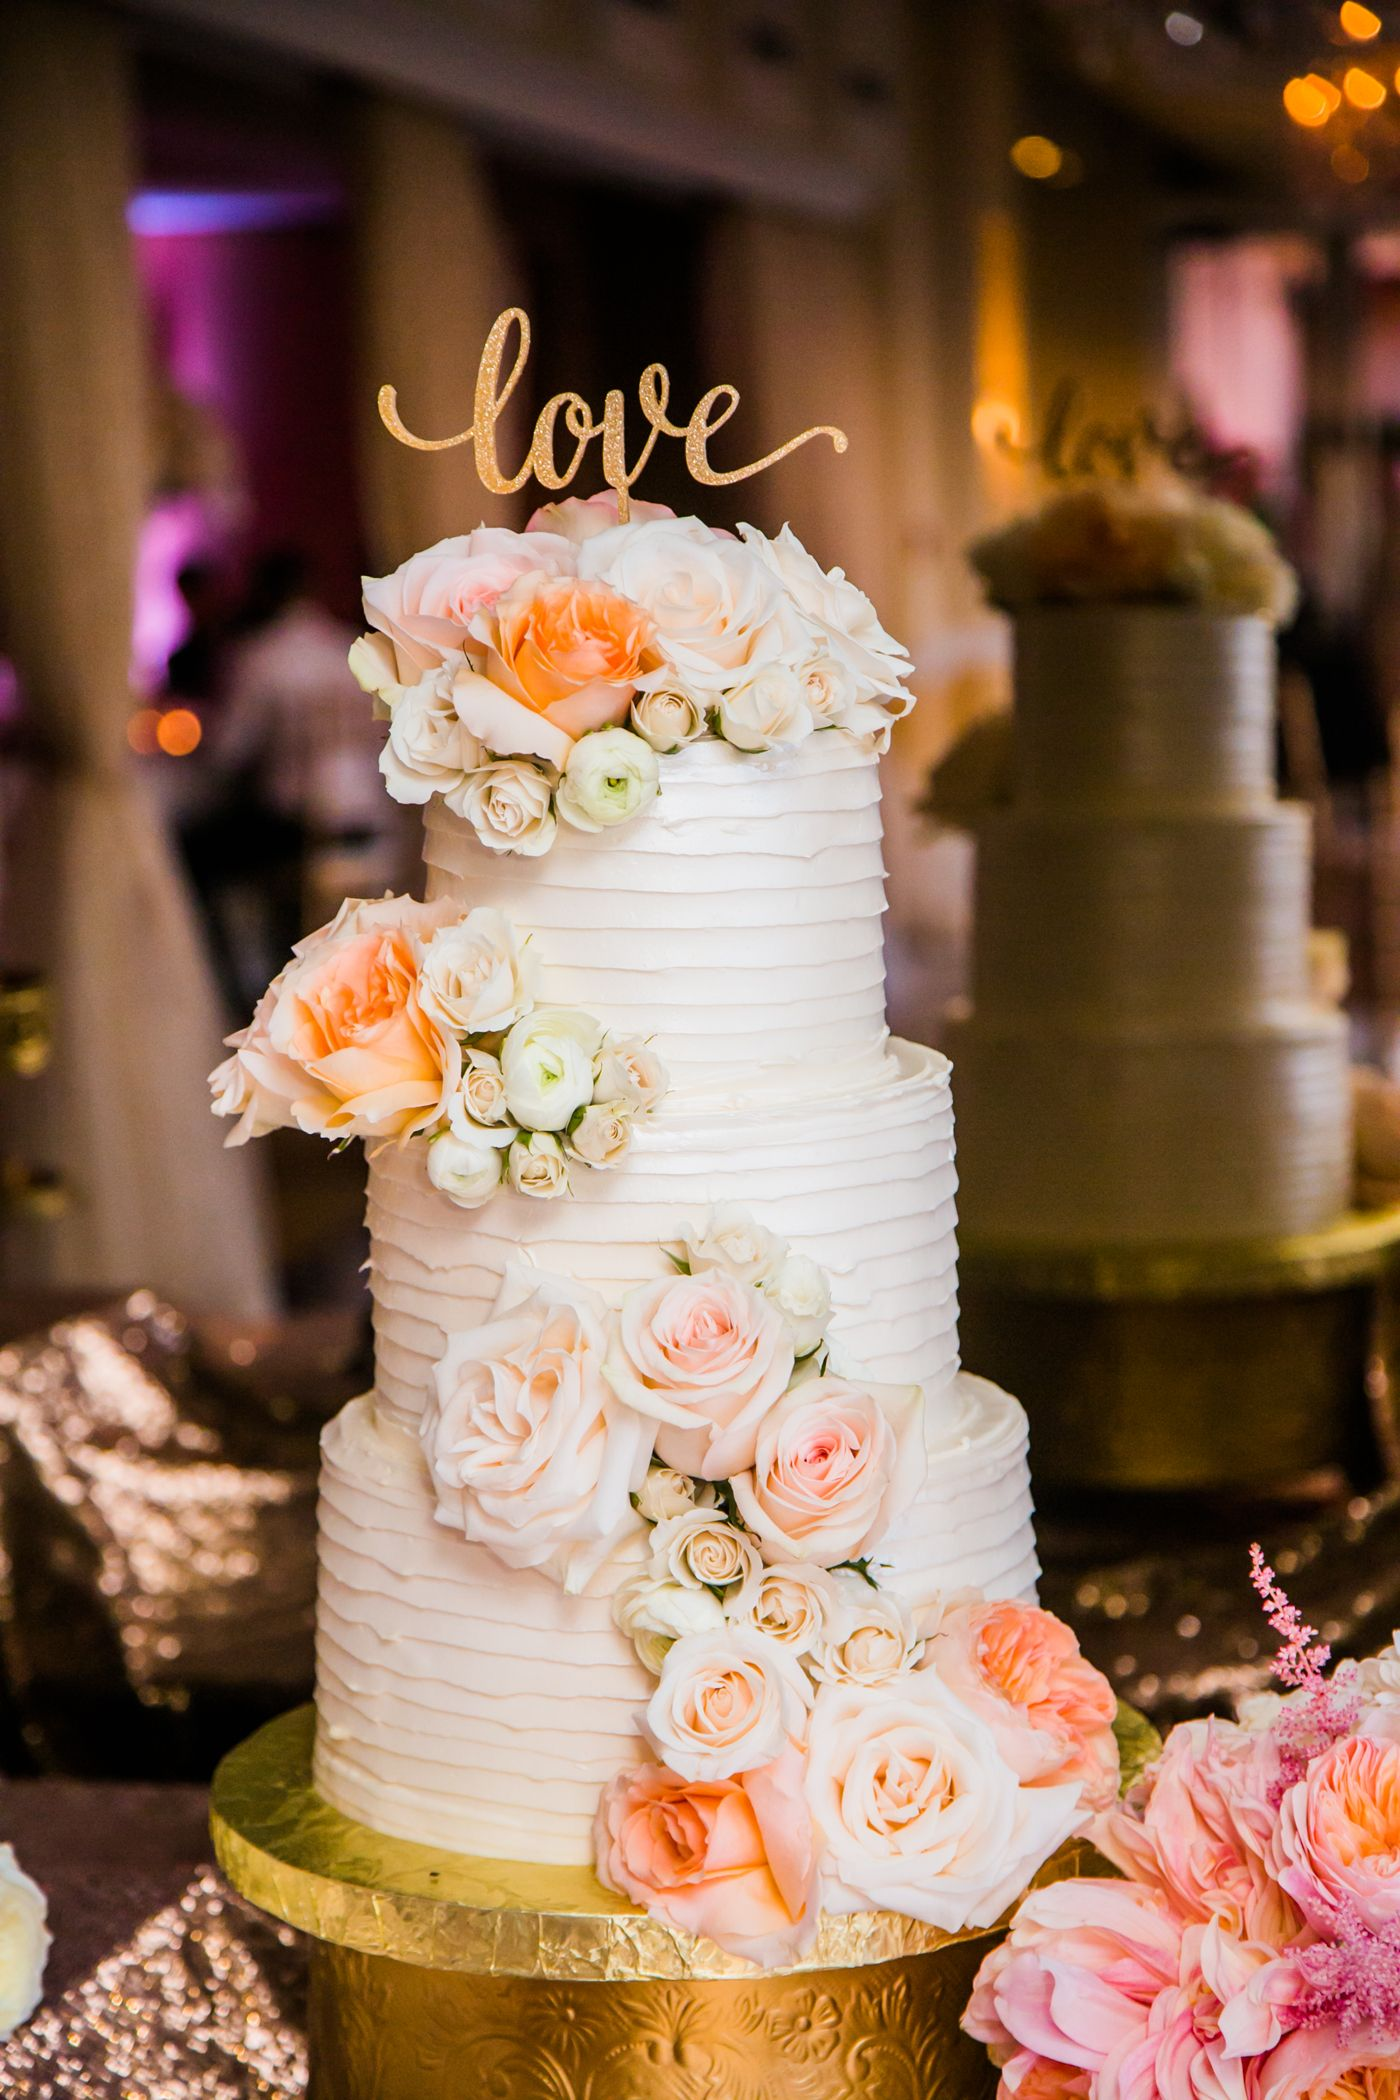 3 tier cake with blush flowers wedding cakes tiered